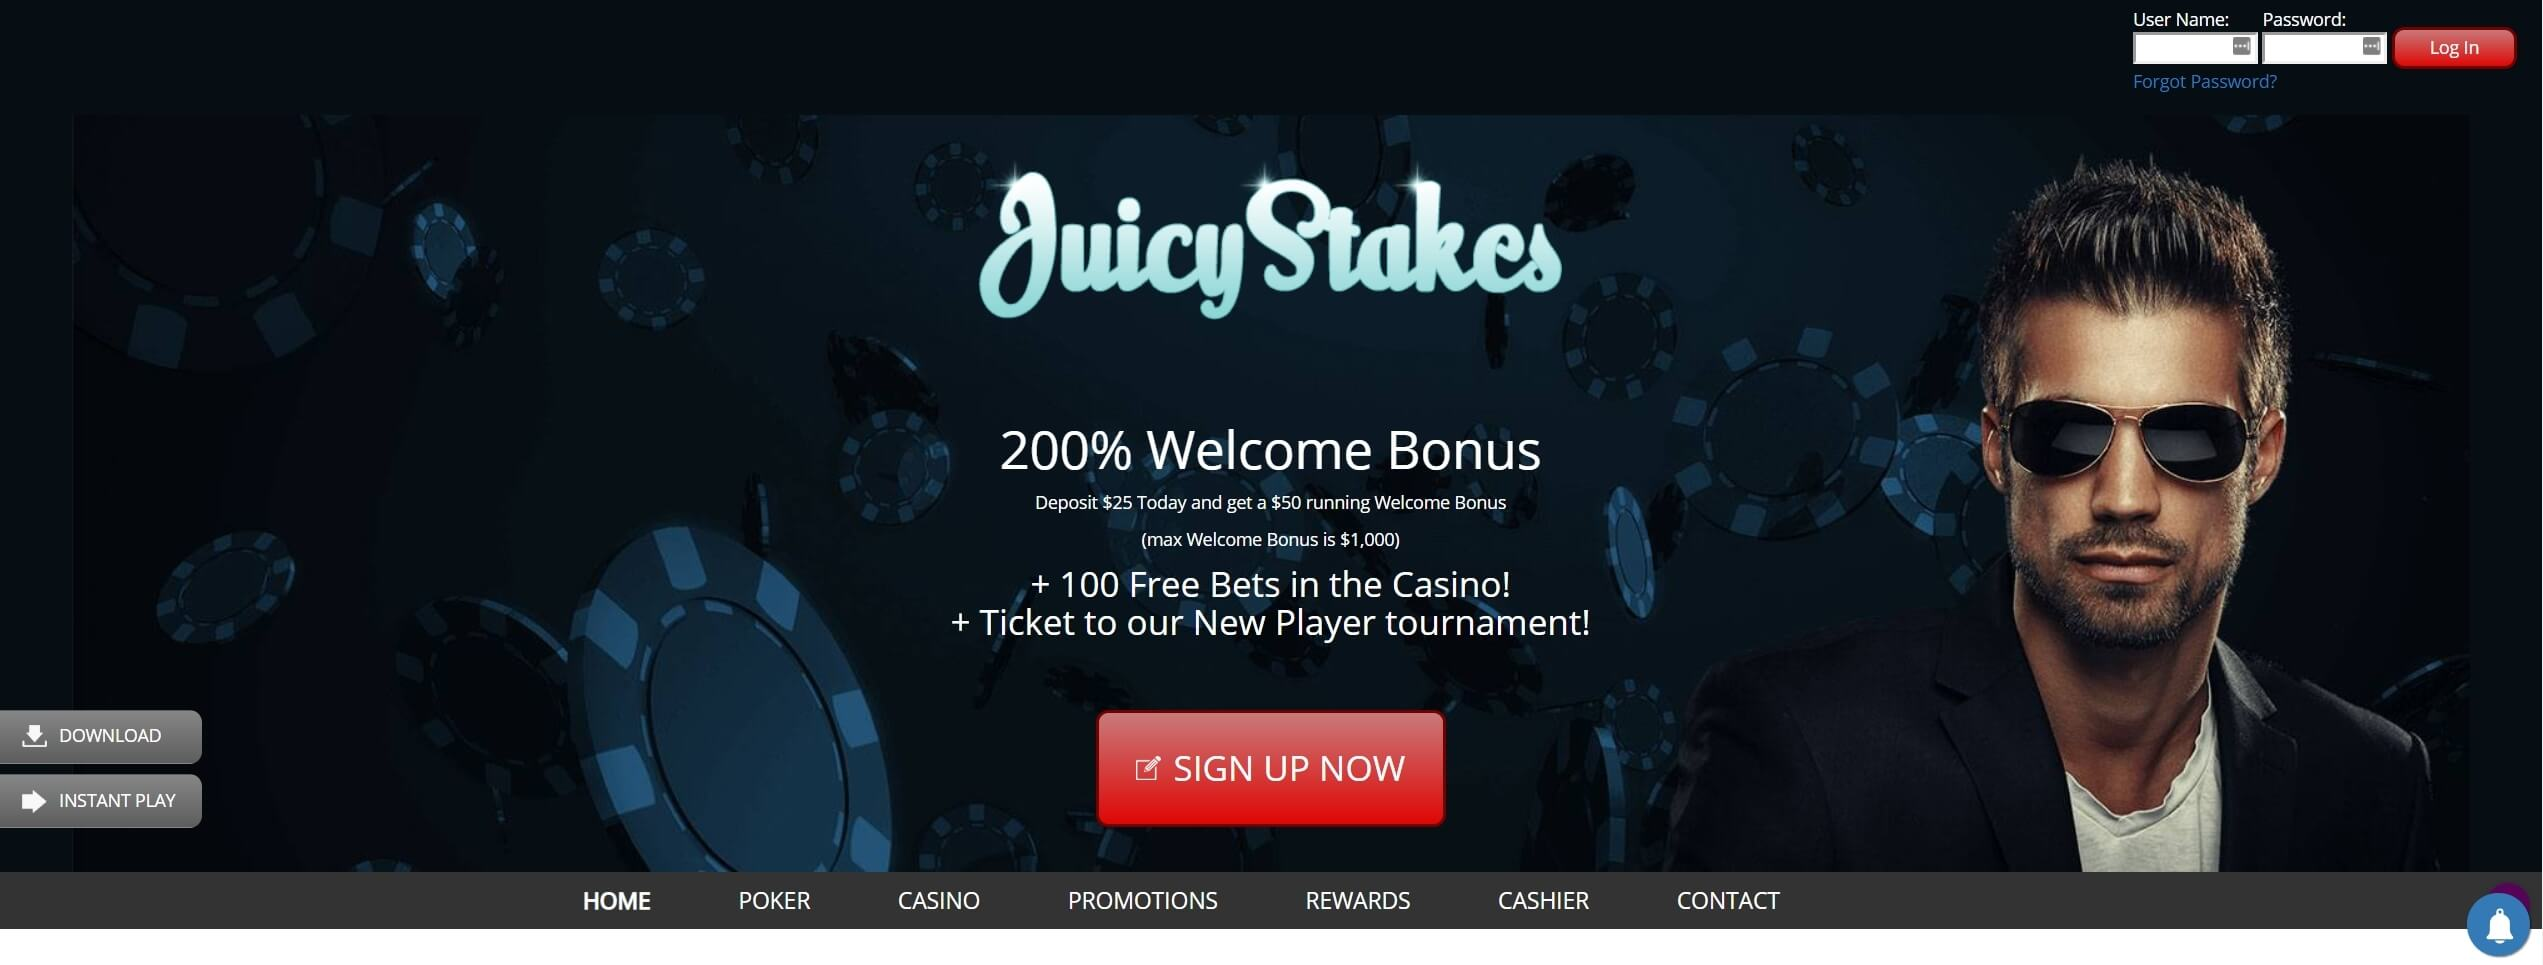 Juicy-Stakes-Step-1